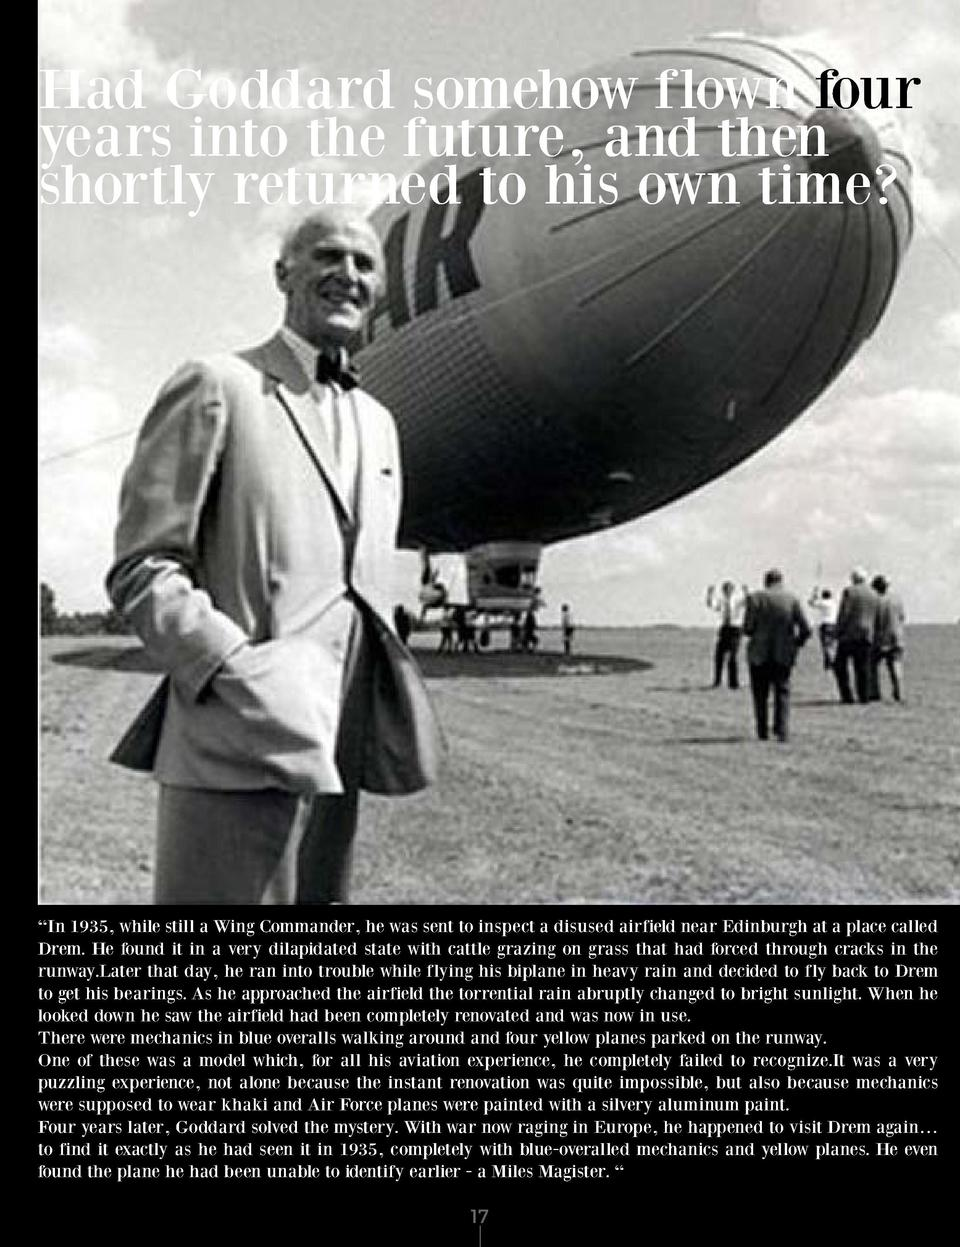 Had Goddard somehow flown four years into the future, and then shortly returned to his own time      Time that has passed ...